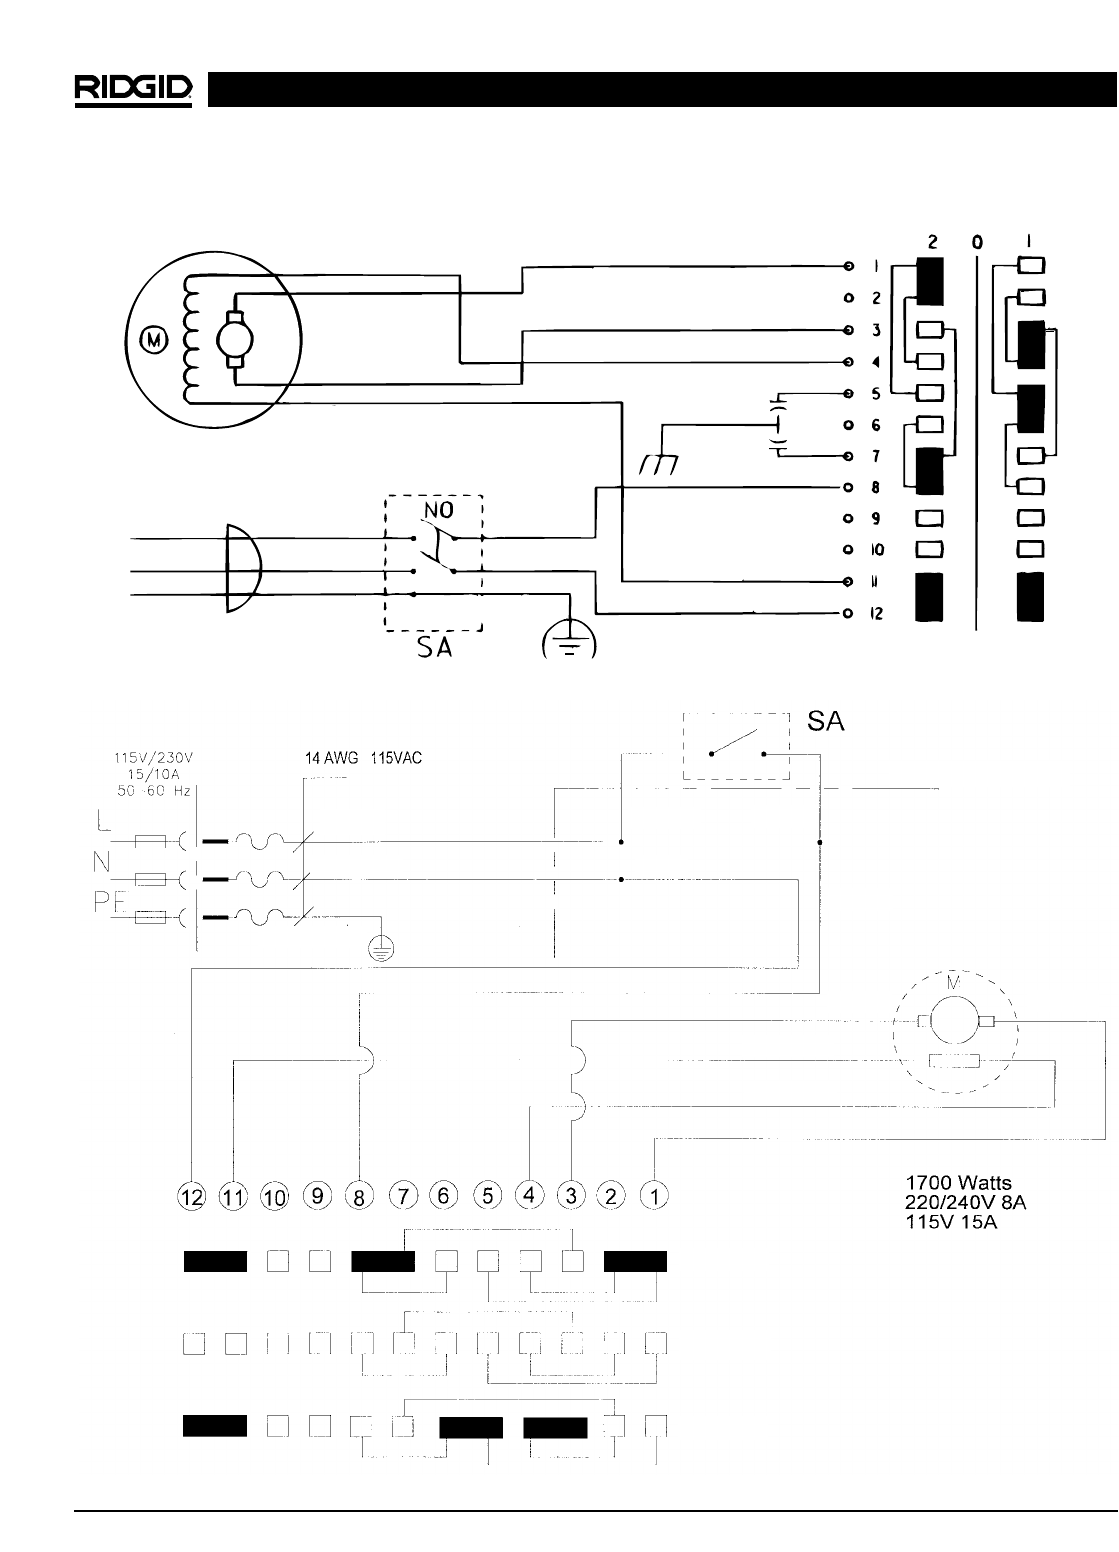 68b109bc 3c1f 445d 9958 08de9edaa37c bg14 page 20 of ridgid sewing machine 300 user guide manualsonline com ridgid r4513 wiring diagram at mifinder.co